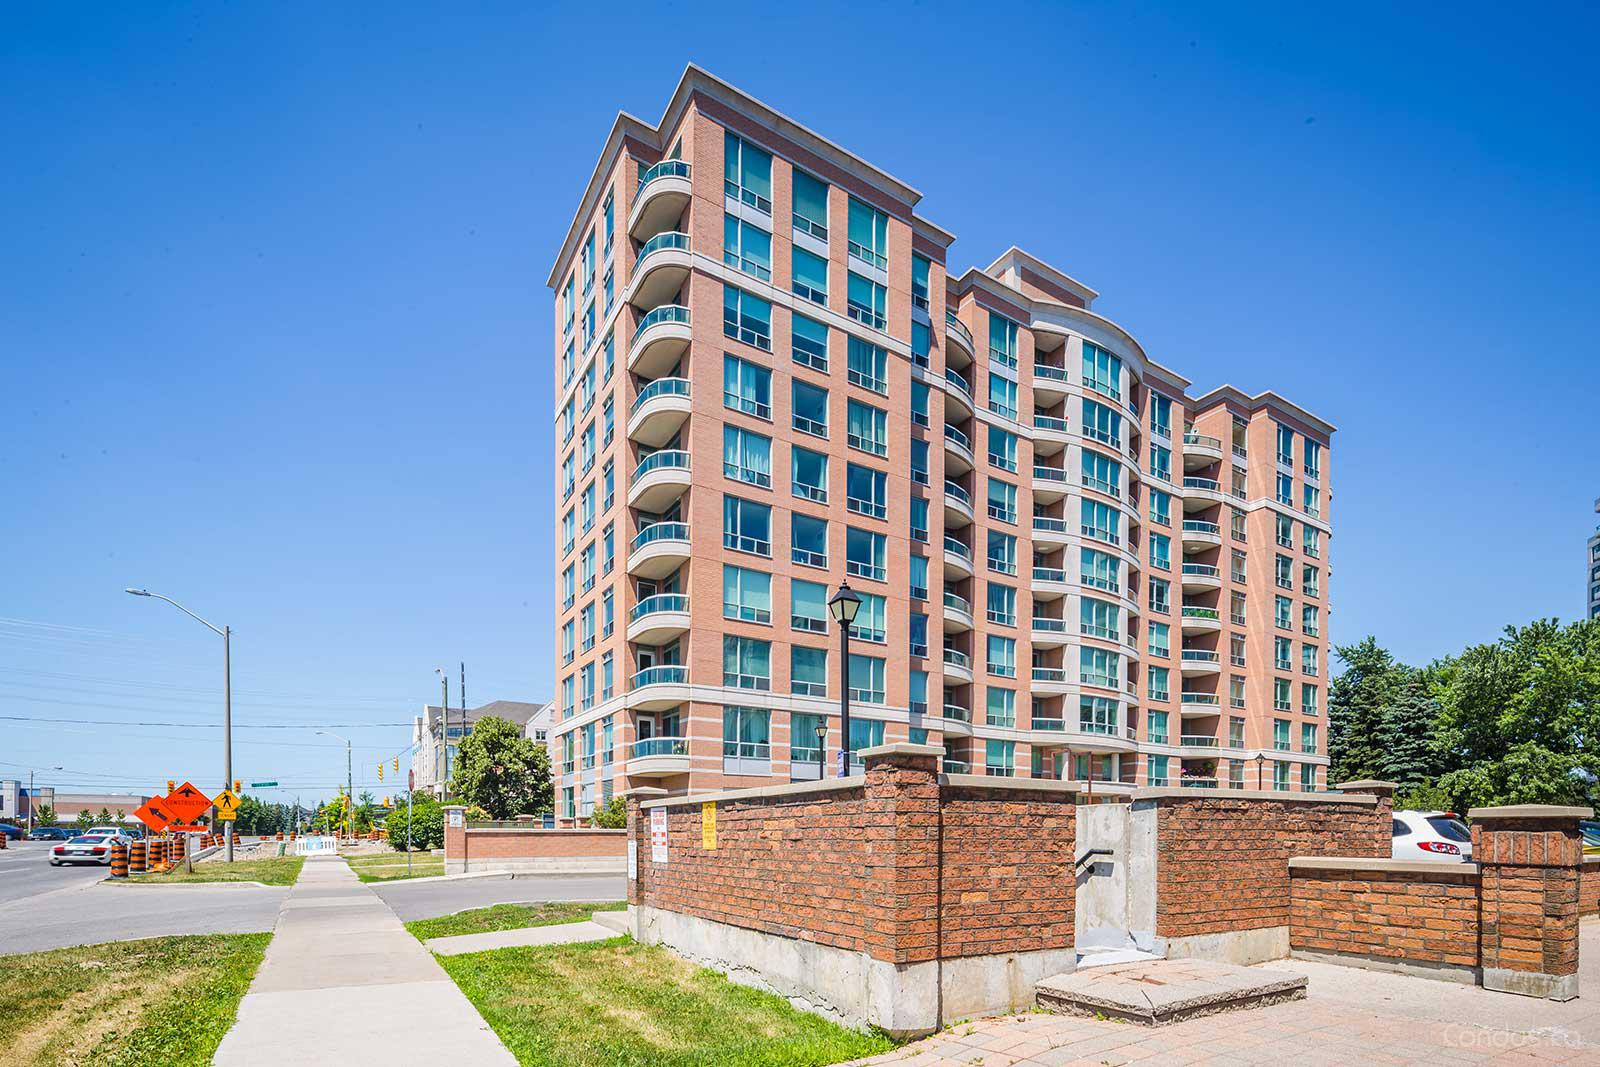 Residence of Beauclaire at 745 New Westminster Dr, Vaughan 0